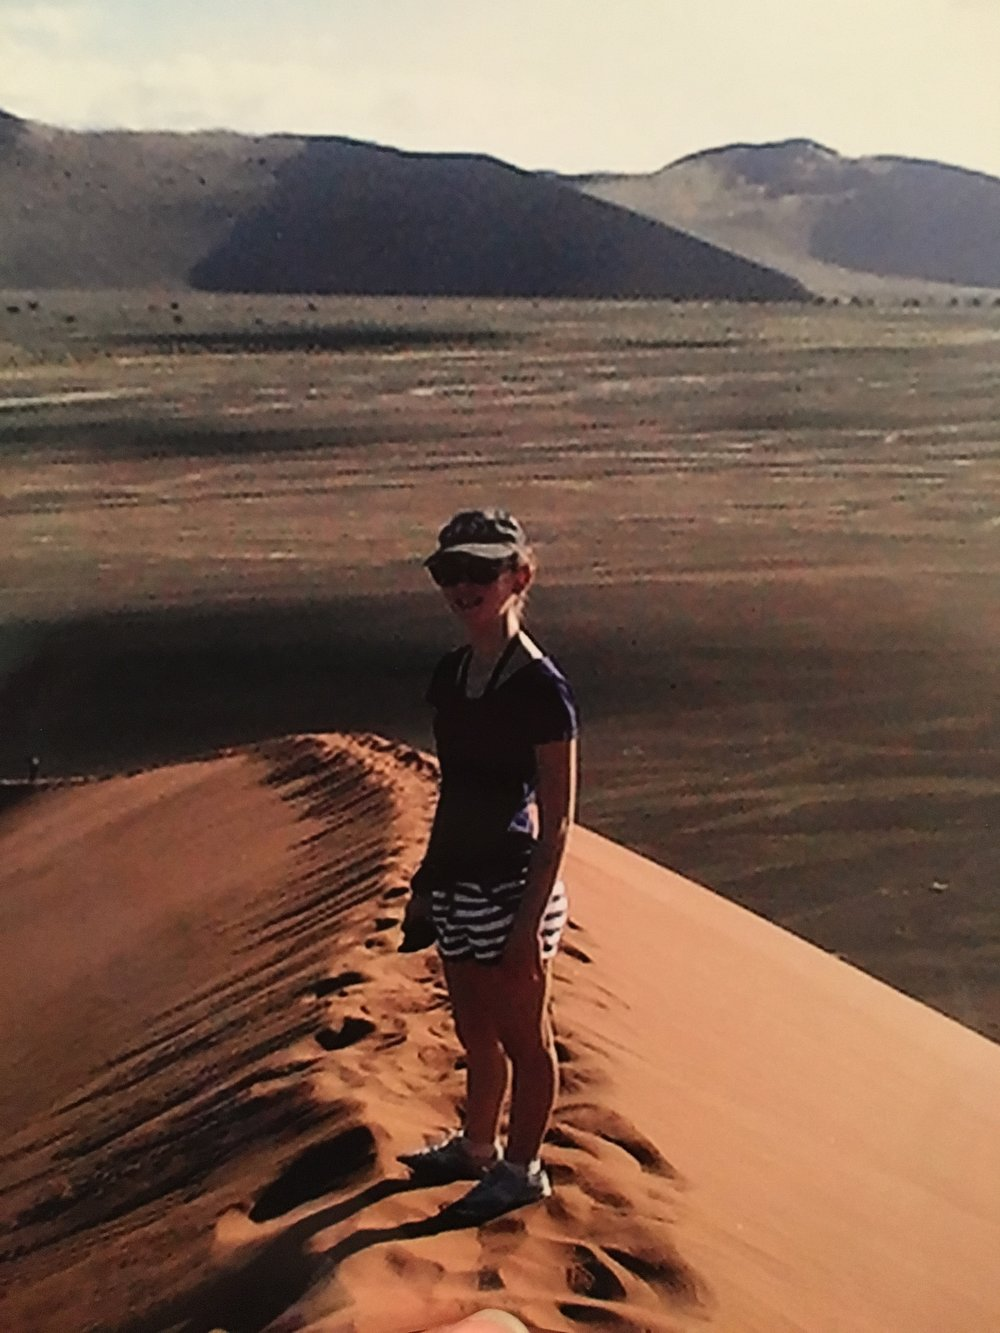 Dune 45, 7 years ago - had smaller legs